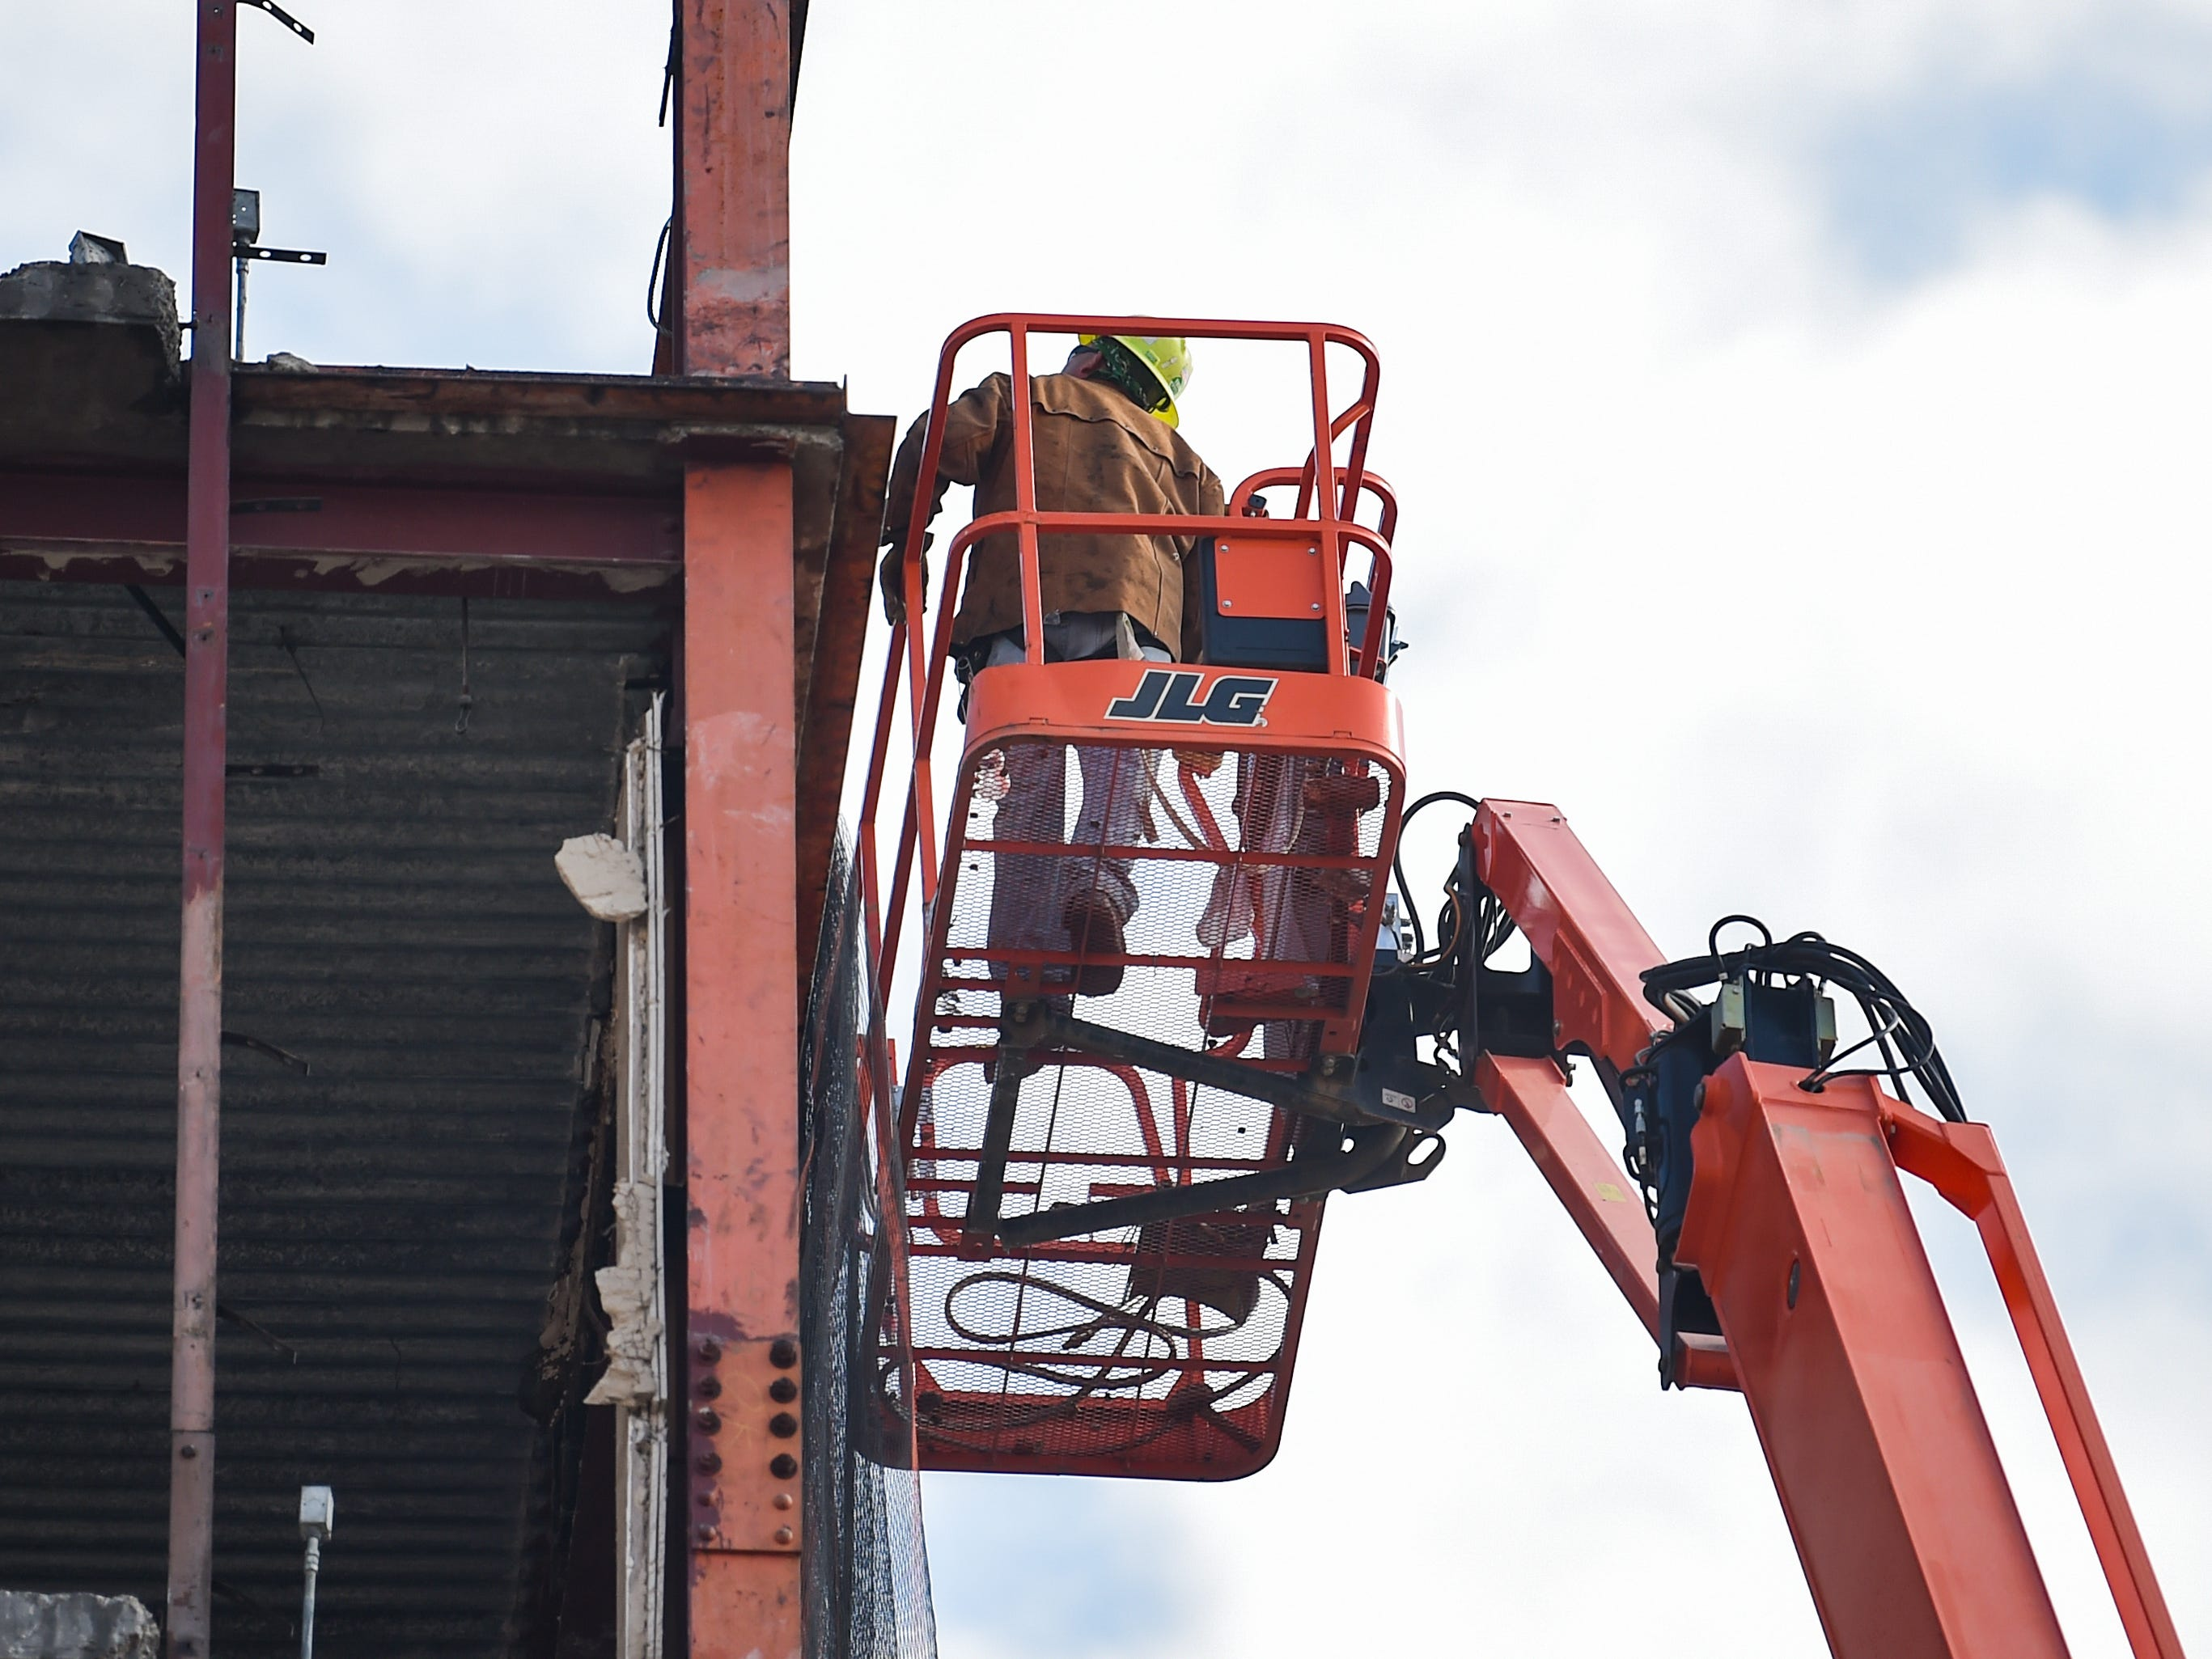 Construction workers must use blow torches to cut beams too high for the trackhoe at the Yorktowne Hotel on October 4, 2018.